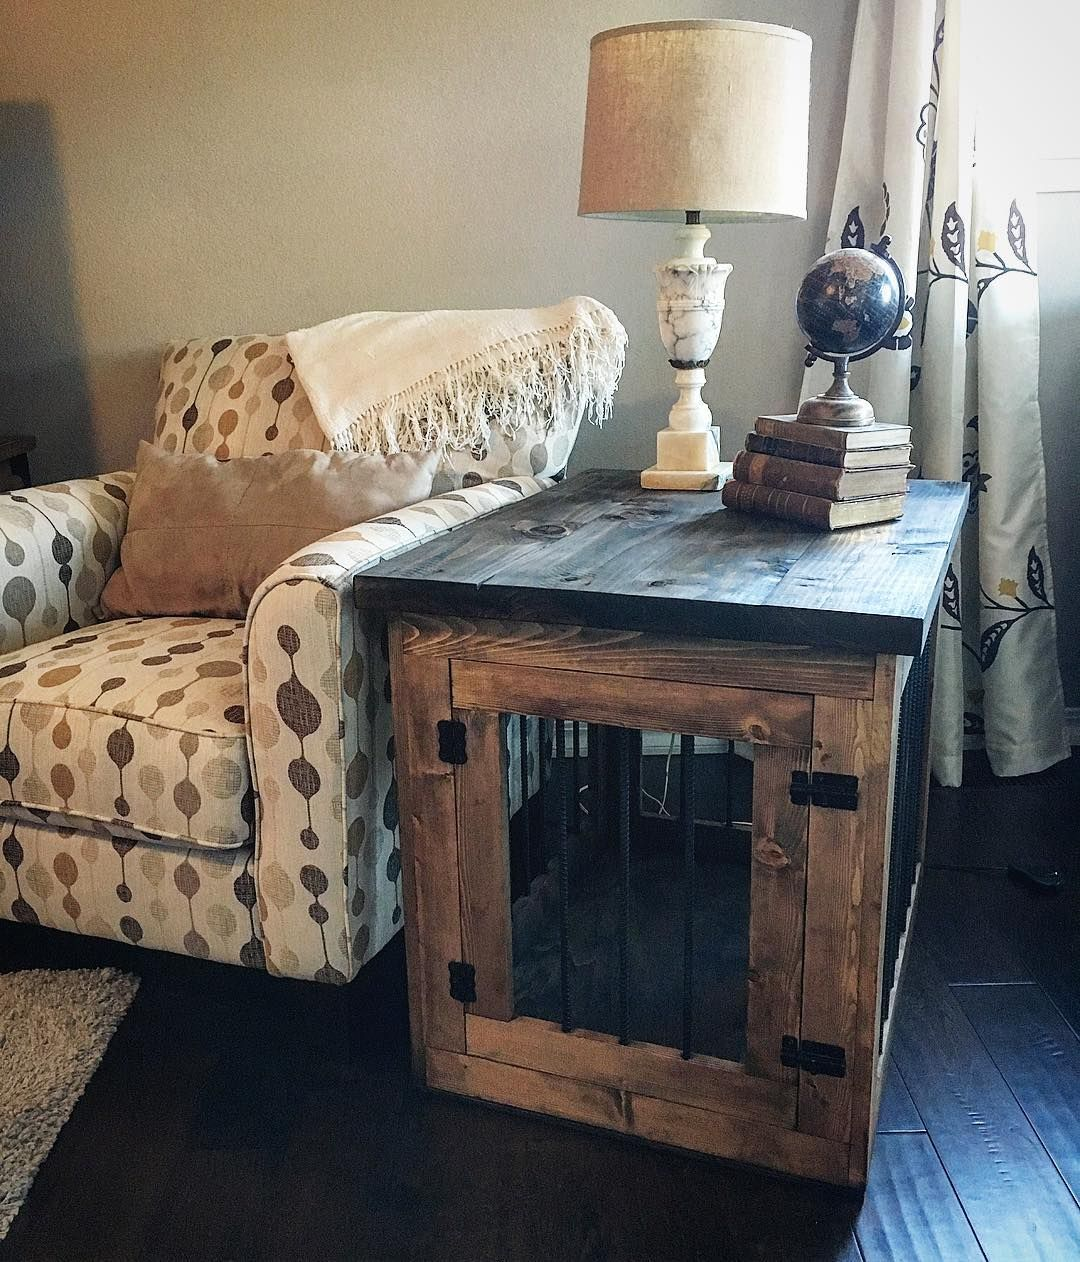 stylish dog end table how turn old into wood pet diy furnishing idea plan with music soundproof land made from out high amazing sofa console contemporary lamps for living room